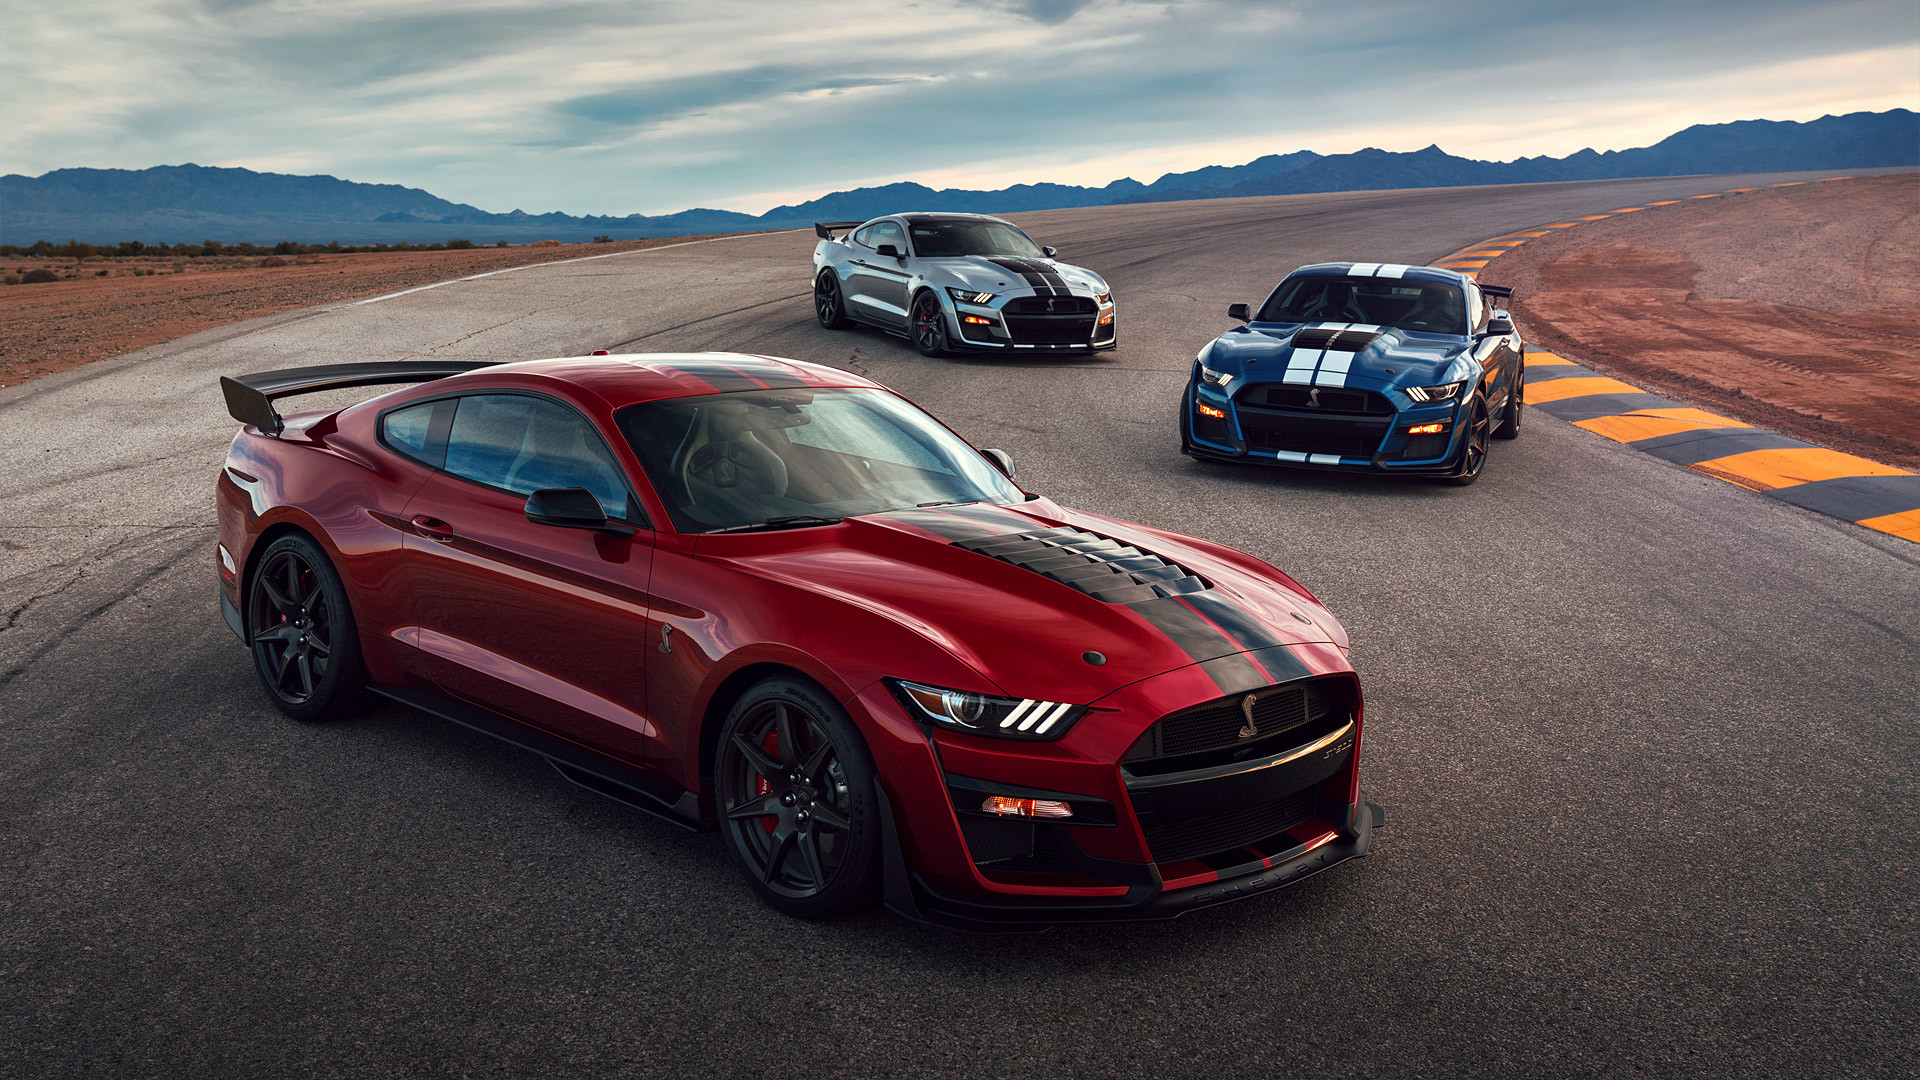 Res: 1920x1080, 2020 Ford Mustang Shelby GT500 picture.